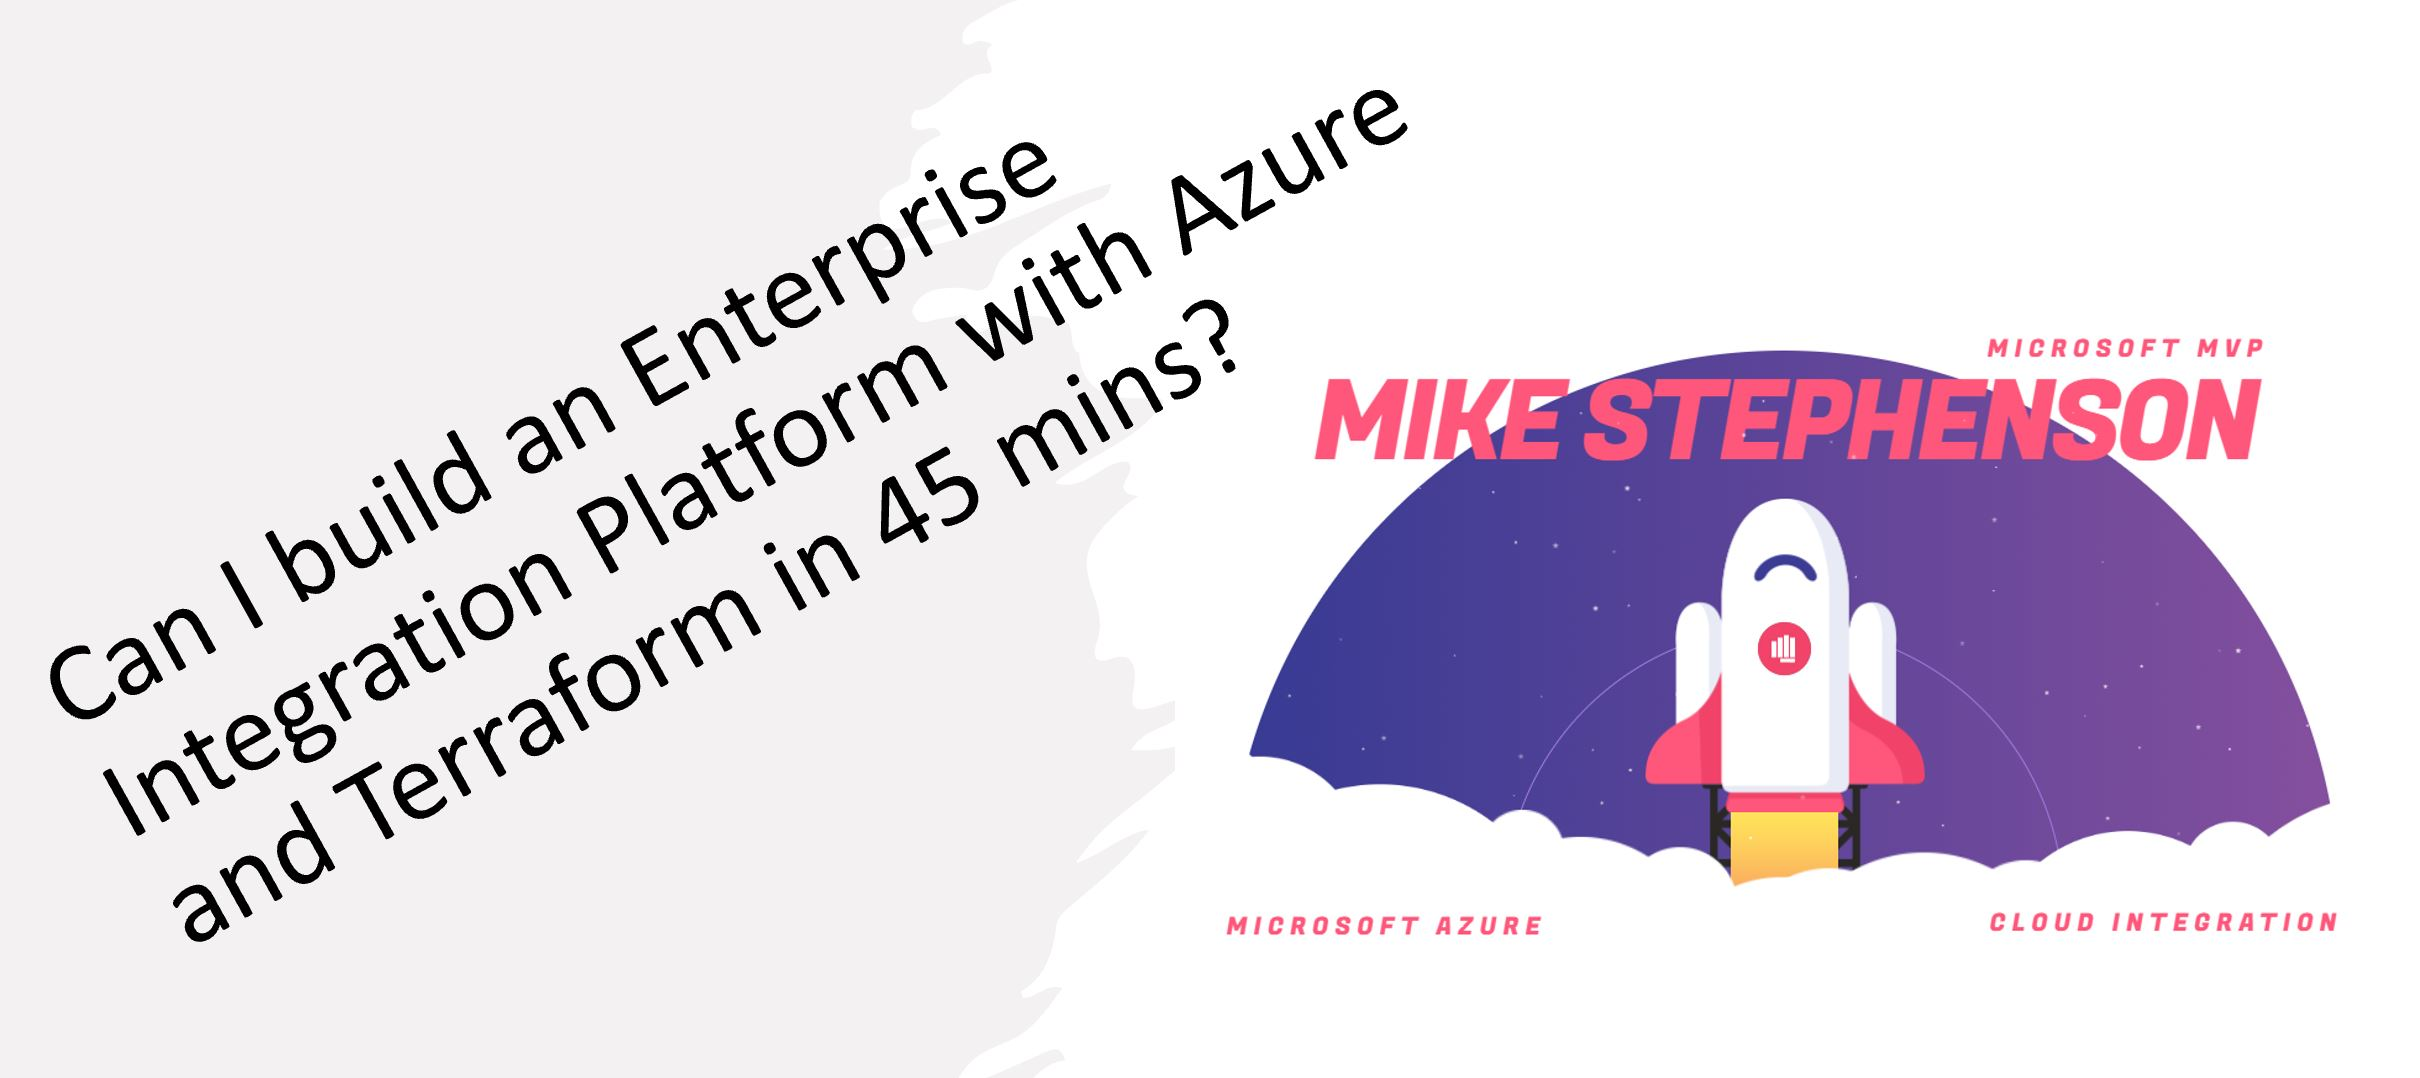 Can I build an Enterprise Integration Platform with Azure and Terraform in 45 mins?